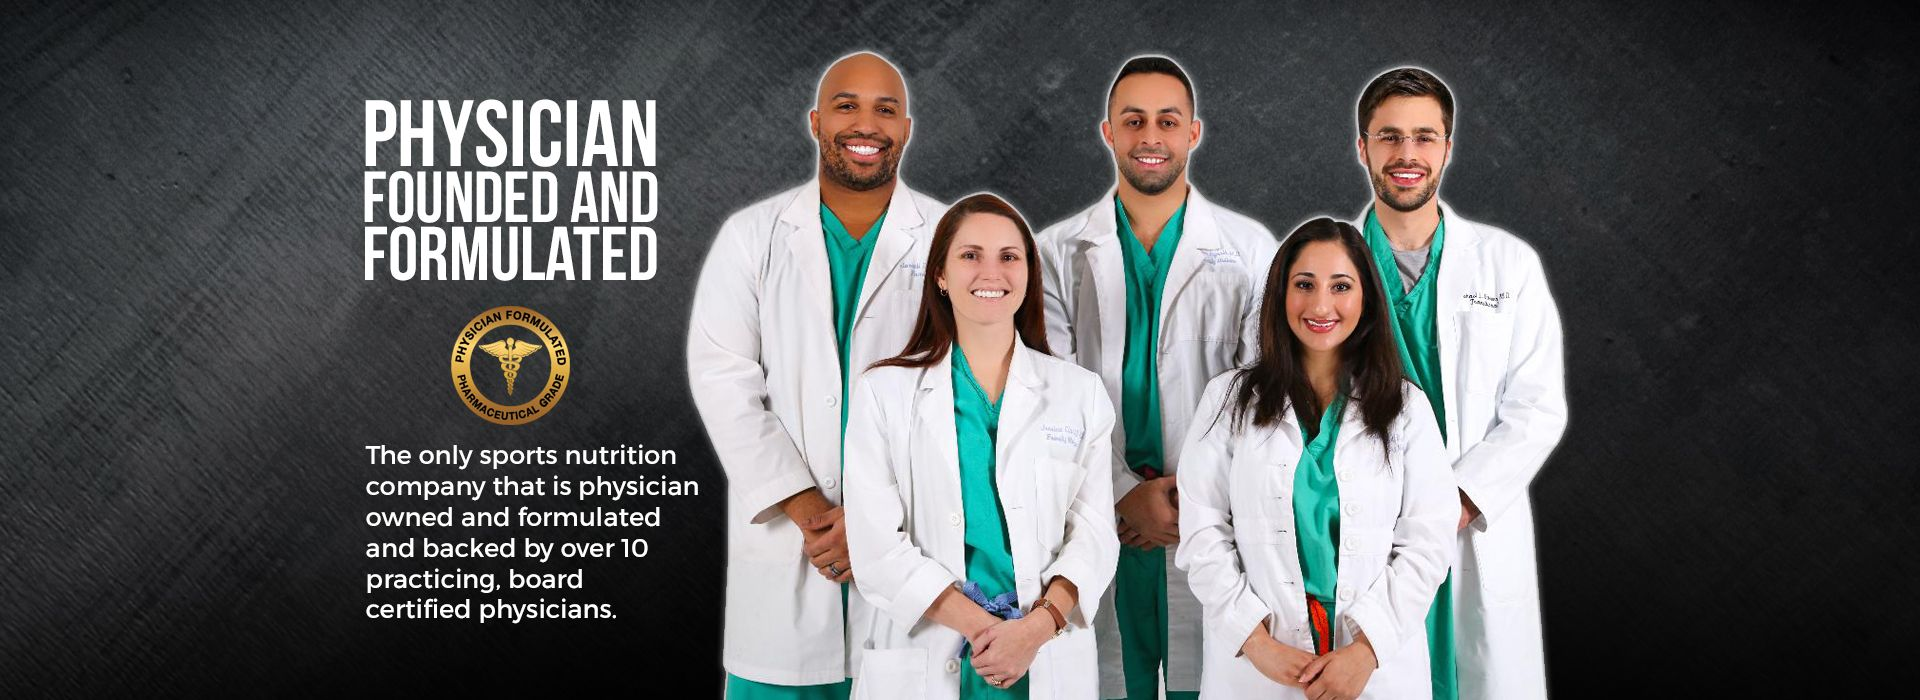 Physician Founded And Formulated